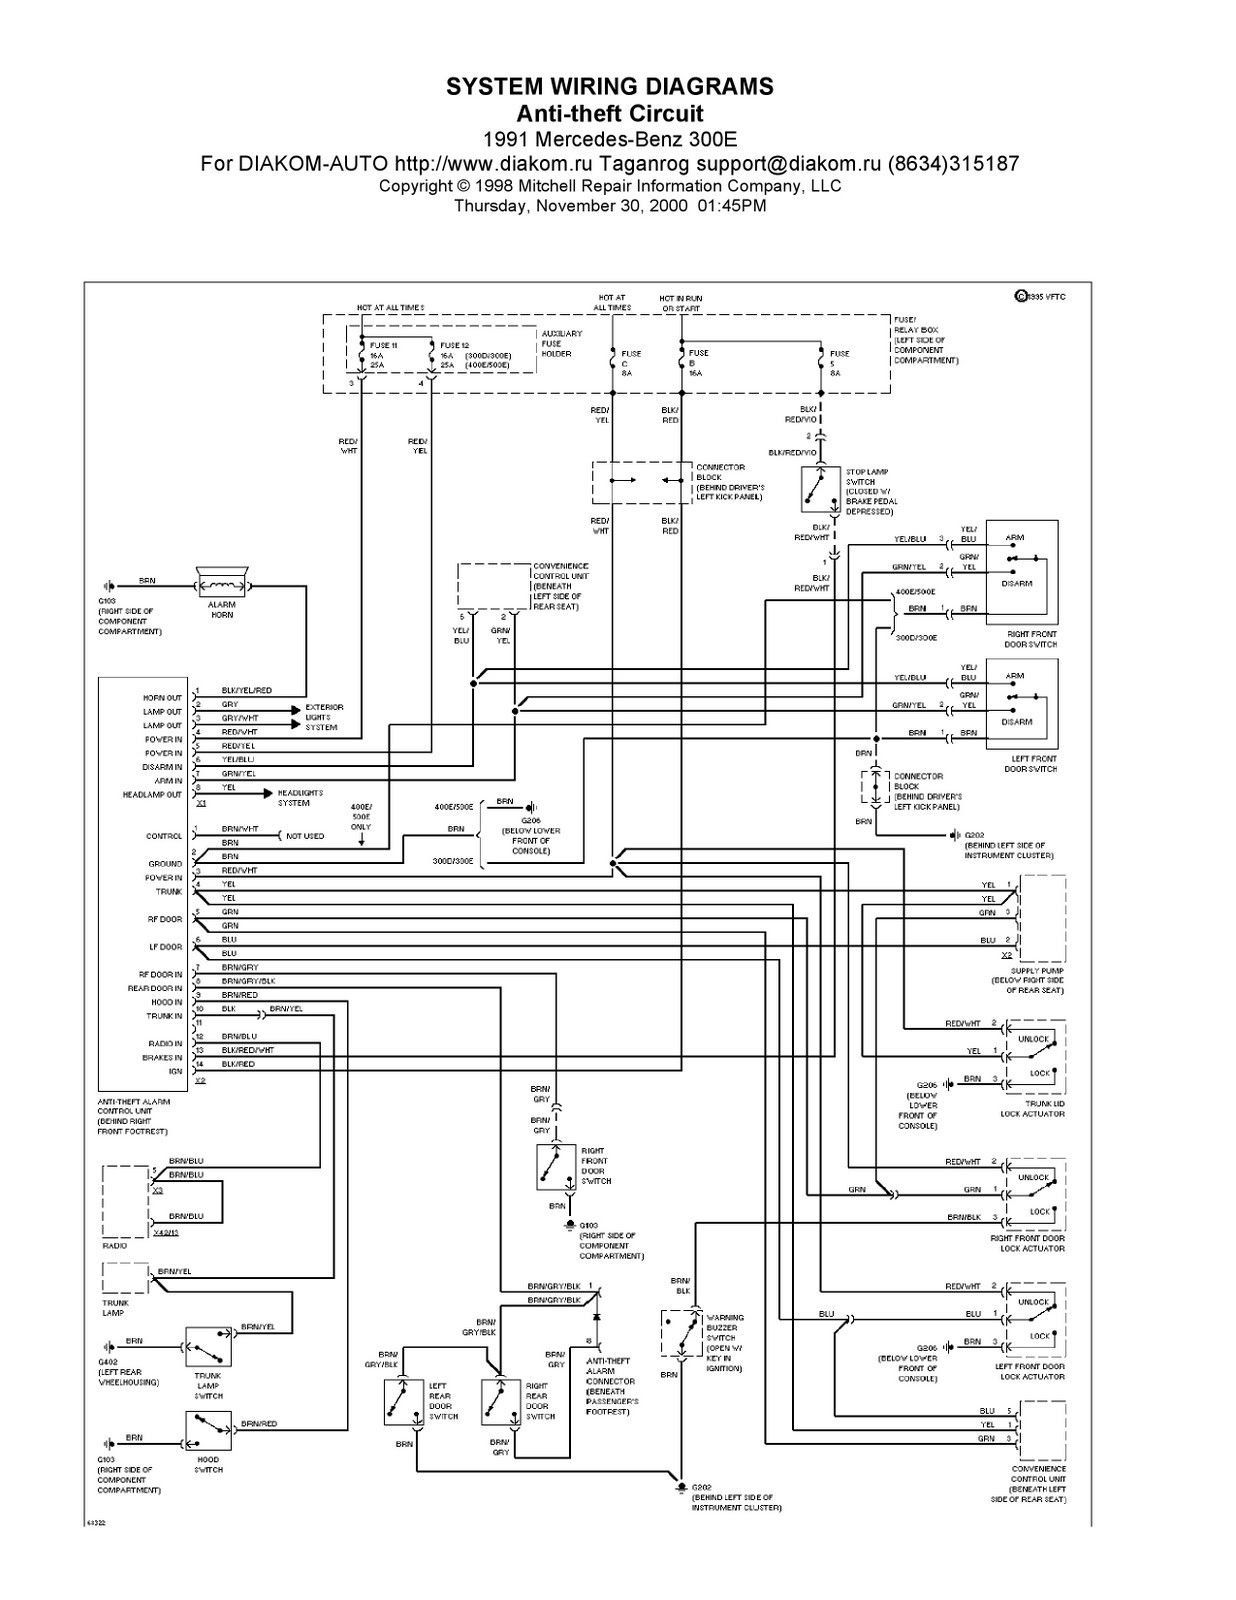 98 Co Engine Wiring Diagram | Electrical diagram, Electrical wiring diagram,  DiagramPinterest